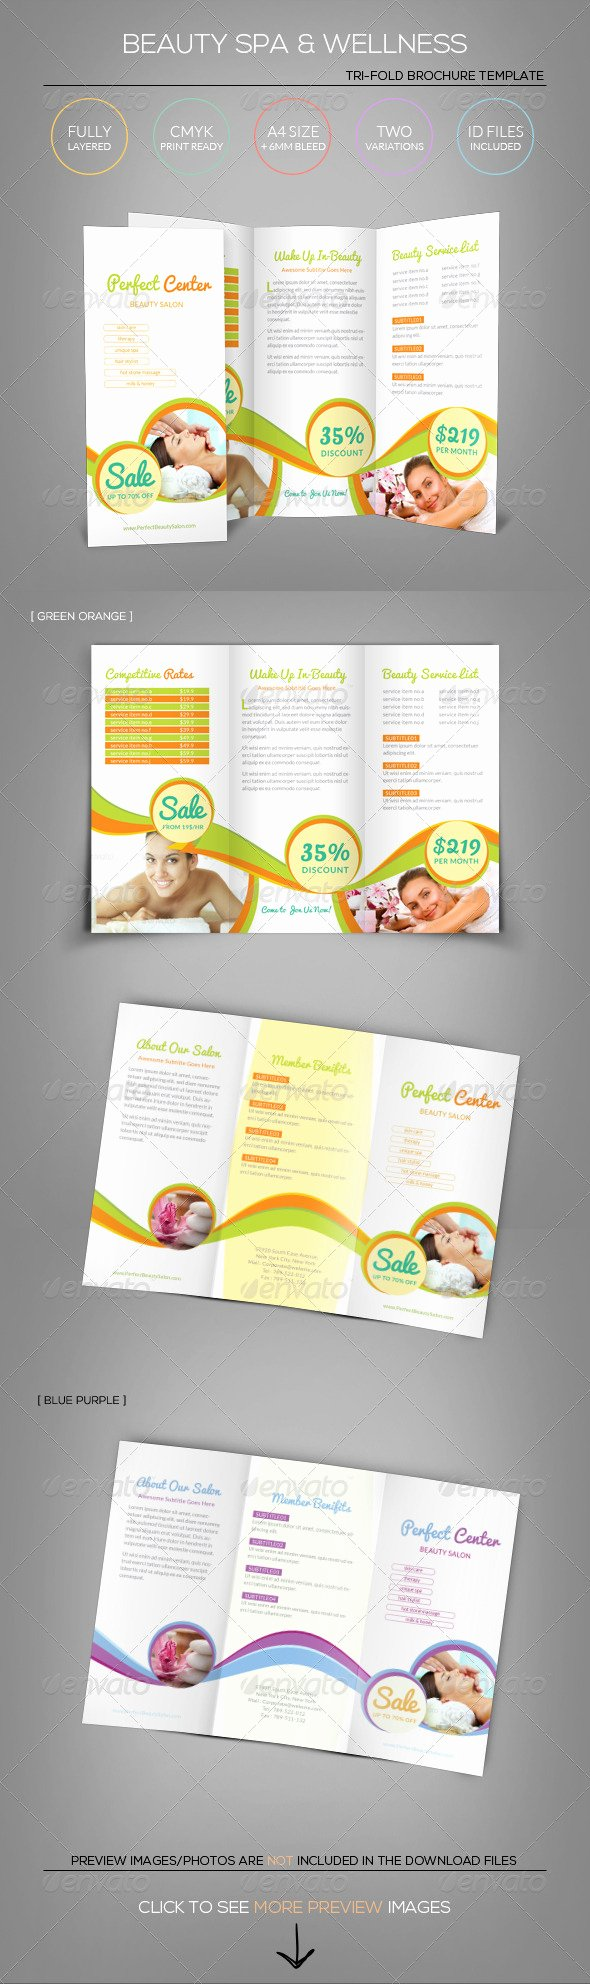 Tri Fold Brochure Size Fresh Beauty Spa & Wellness Tri Fold Brochure Template